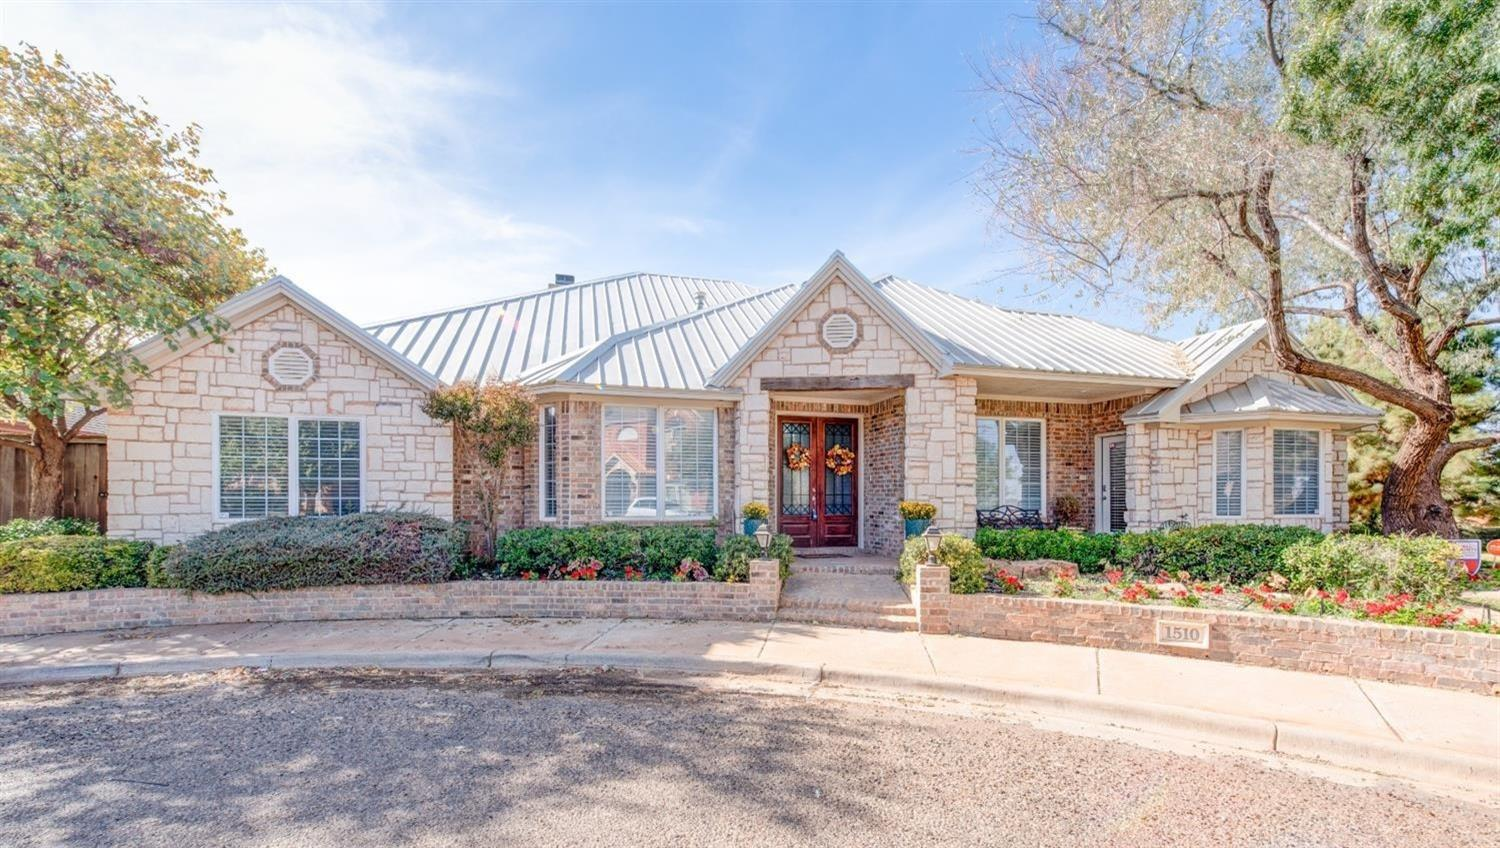 Tired of seeing the same house over and over in Lubbock? Look no further! This former Parade of Homes winner in Preston Manor is simply one of a kind. Situated on a quiet cul-de-sac, this home looks like it was plucked right out of the Texas Hill Country. A standing seam metal roof adorns a well-appointed exterior surrounded with Austin stone. The main living area has a soaring ceiling with open trussed cedar that flows effortlessly into the outdoor patio. High end custom touches can be found throughout the home, including: Three separate fire places. Surround sound throughout. A master closet that functions as a safe room. A separate 3rd car garage. Two living areas and an office/bonus room. And the list goes on and on. All of this is situated in Lubbock's premier master planned community with a swimming pool, tennis courts, trails, parks, beautiful club house with fitness facility, dog park, and more. Do yourself a favor and come see this house in person. You won't be disappointed